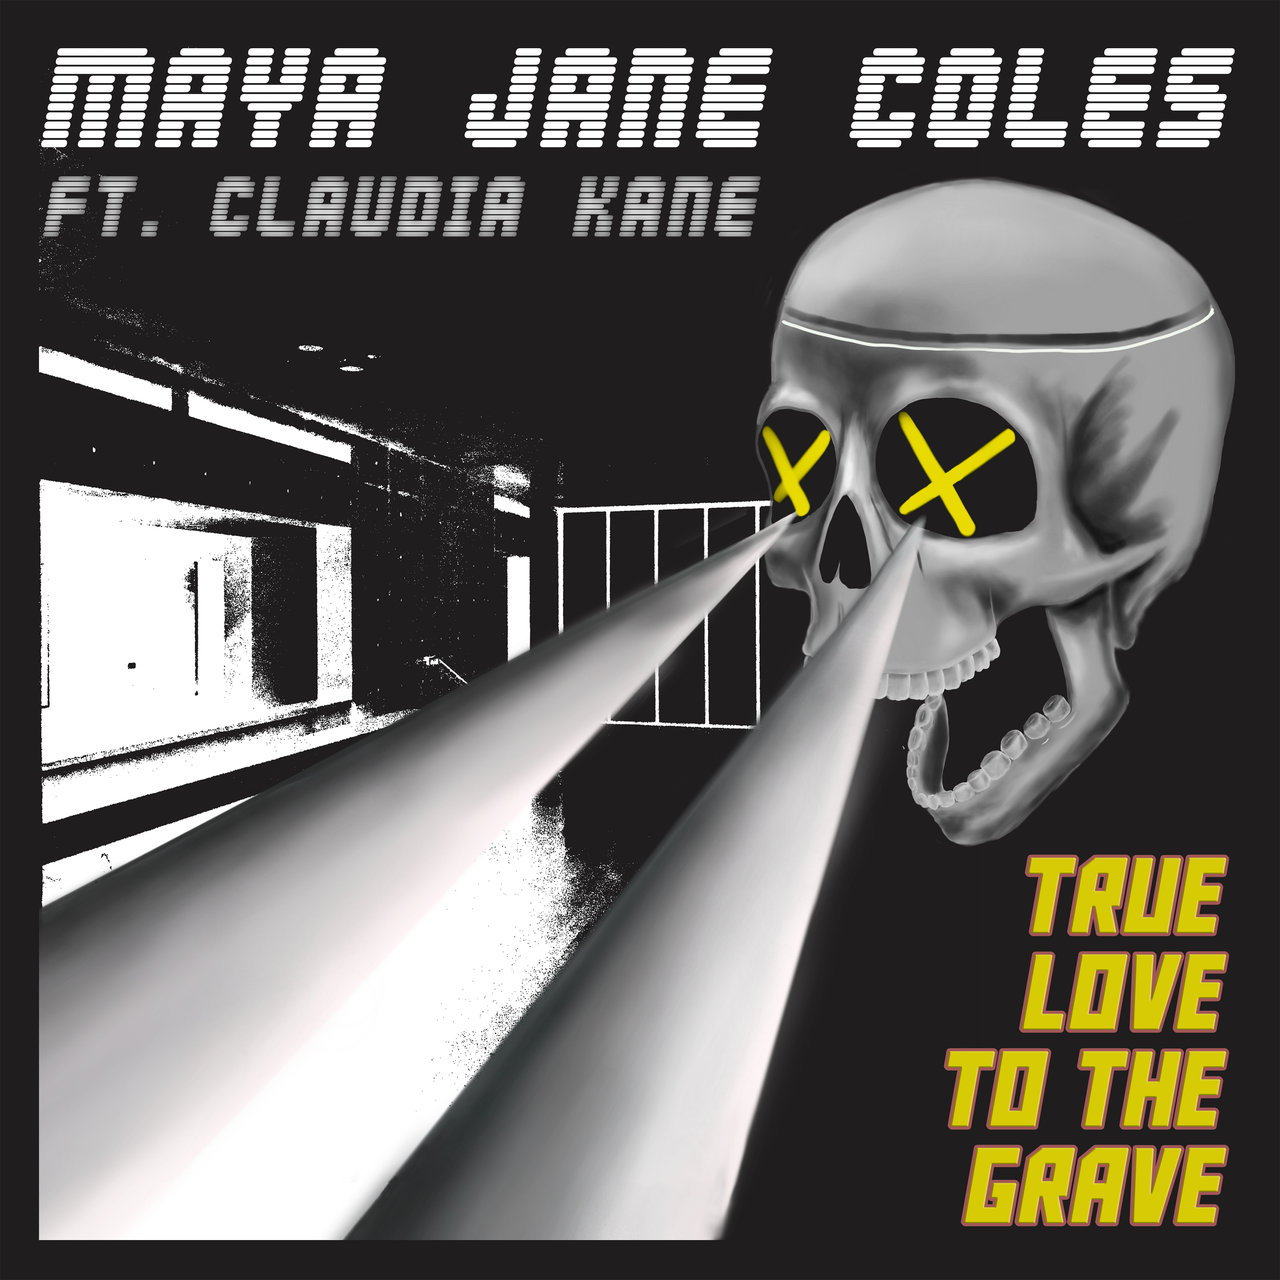 Download True Love to the Grave feat. Claudia Kane on Electrobuzz